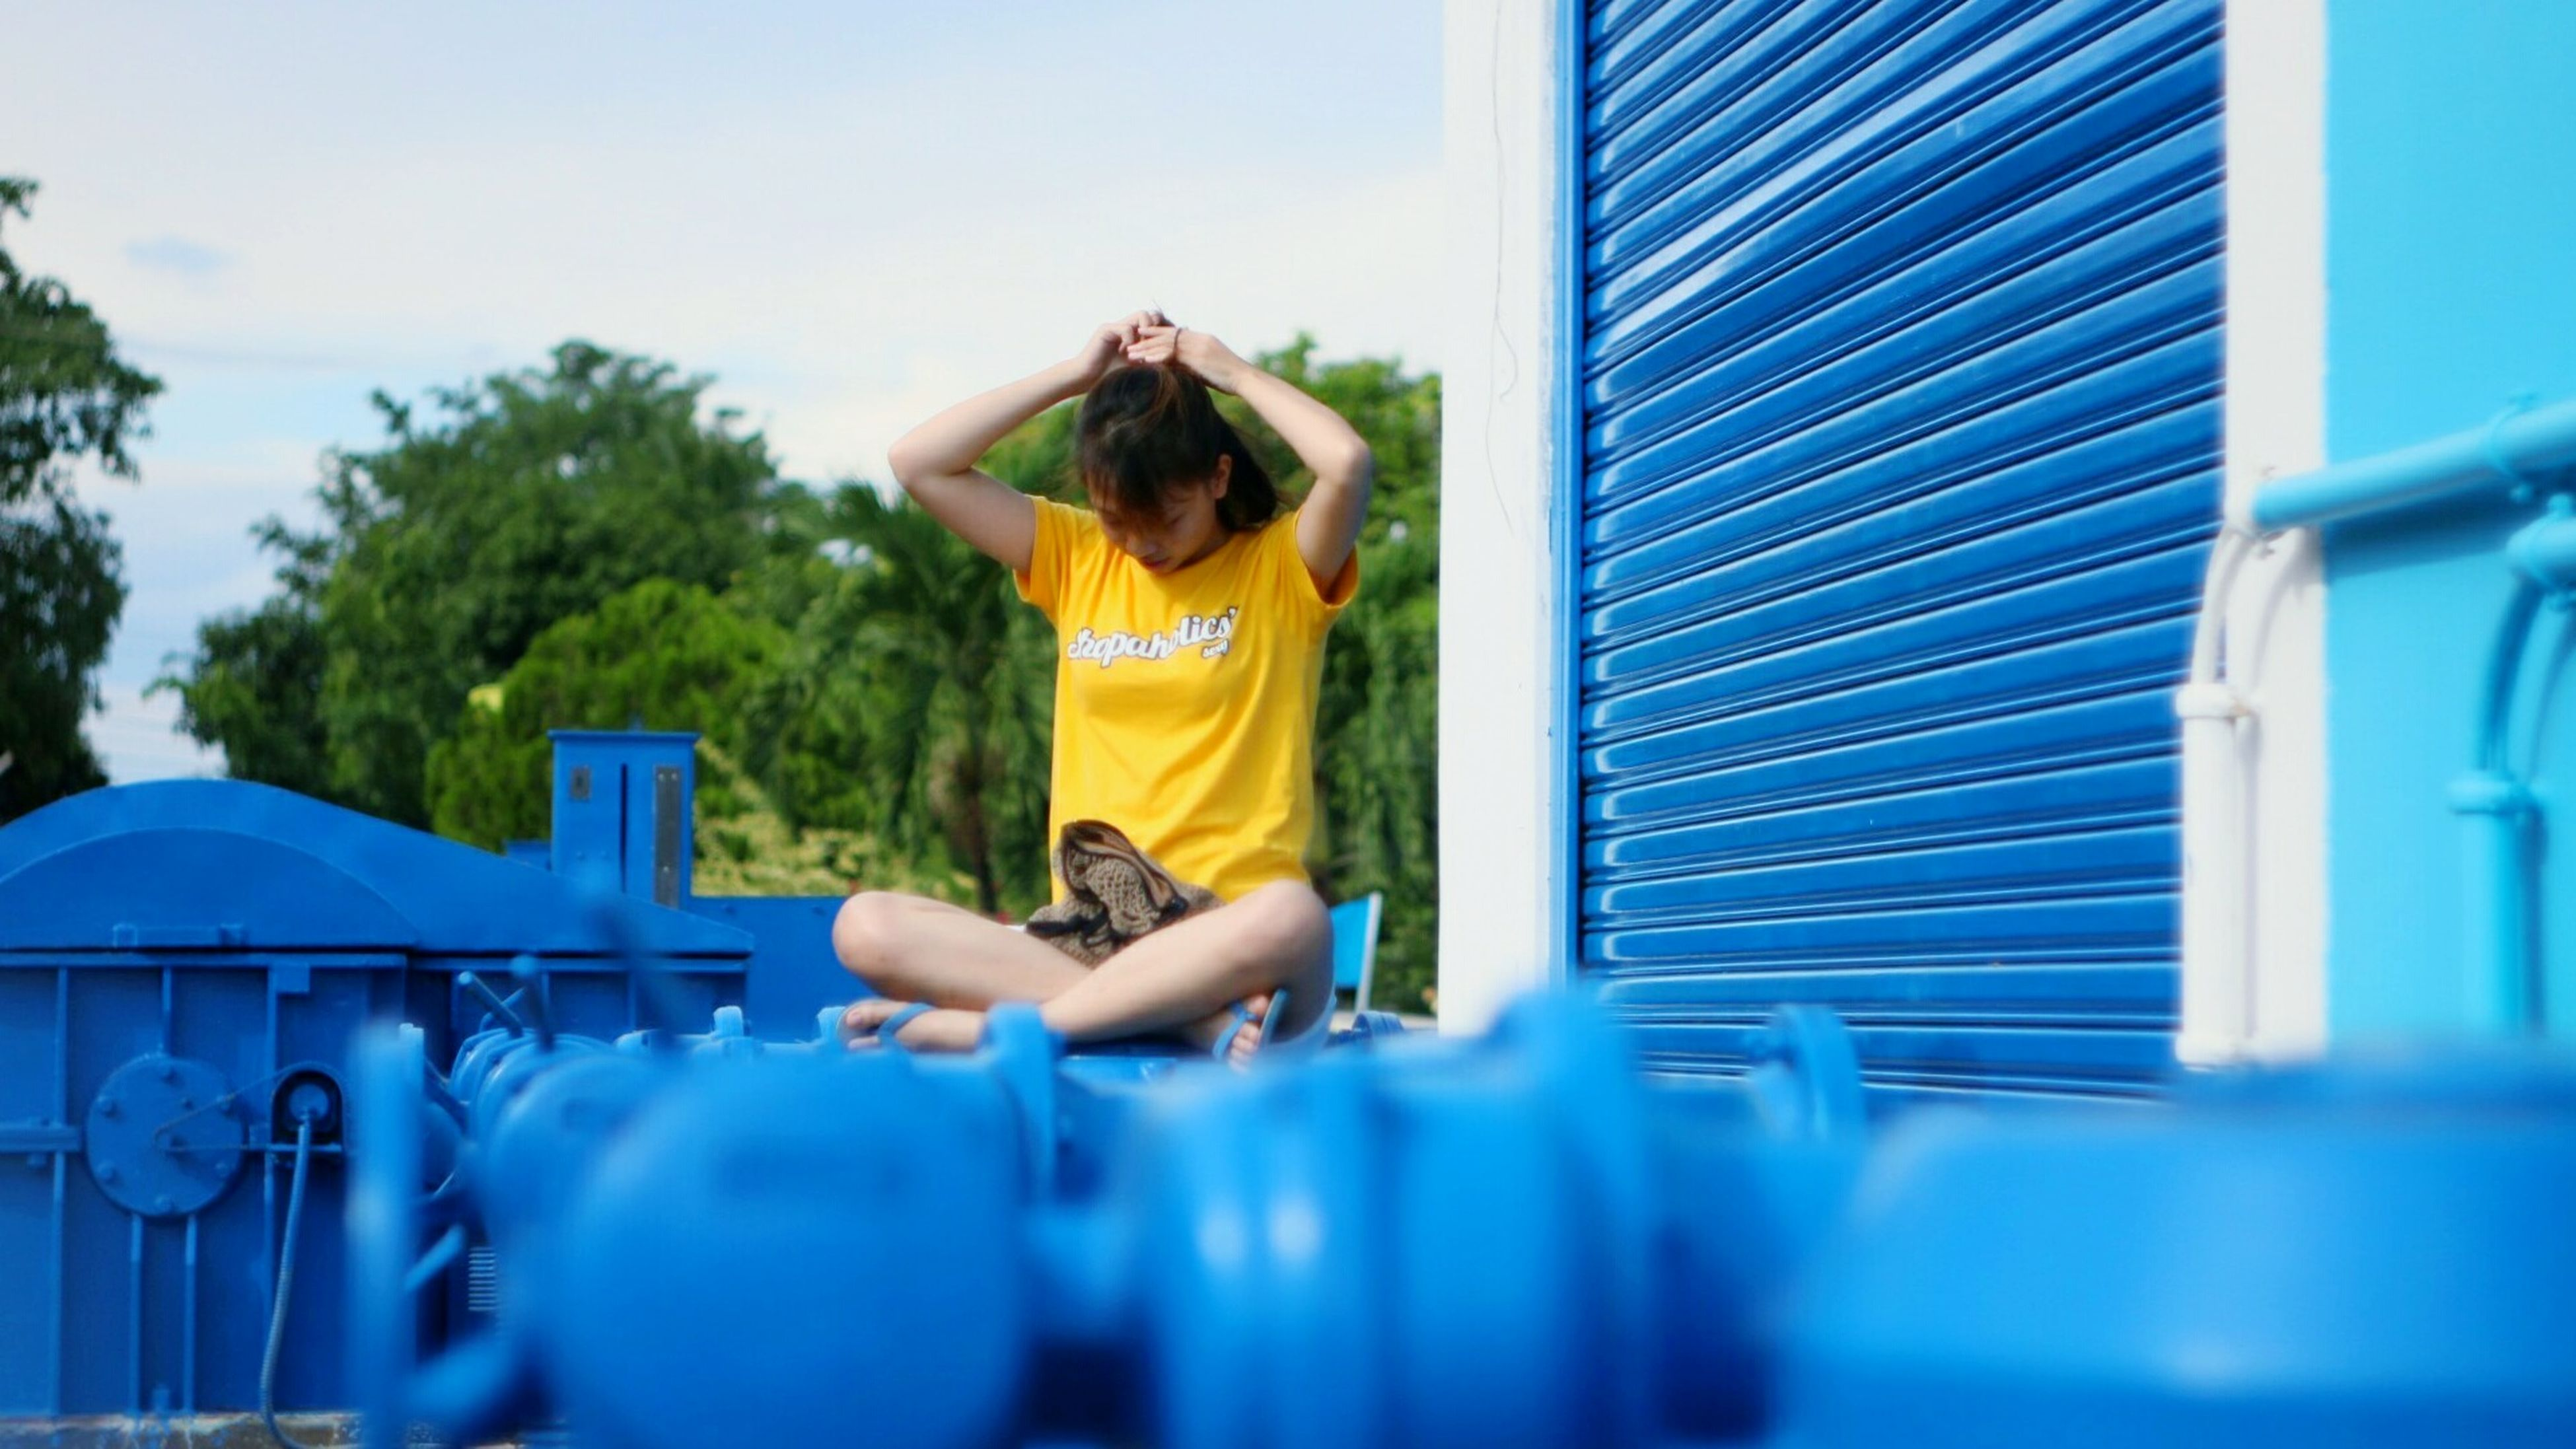 blue, lifestyles, leisure activity, sky, day, part of, cropped, outdoors, casual clothing, focus on foreground